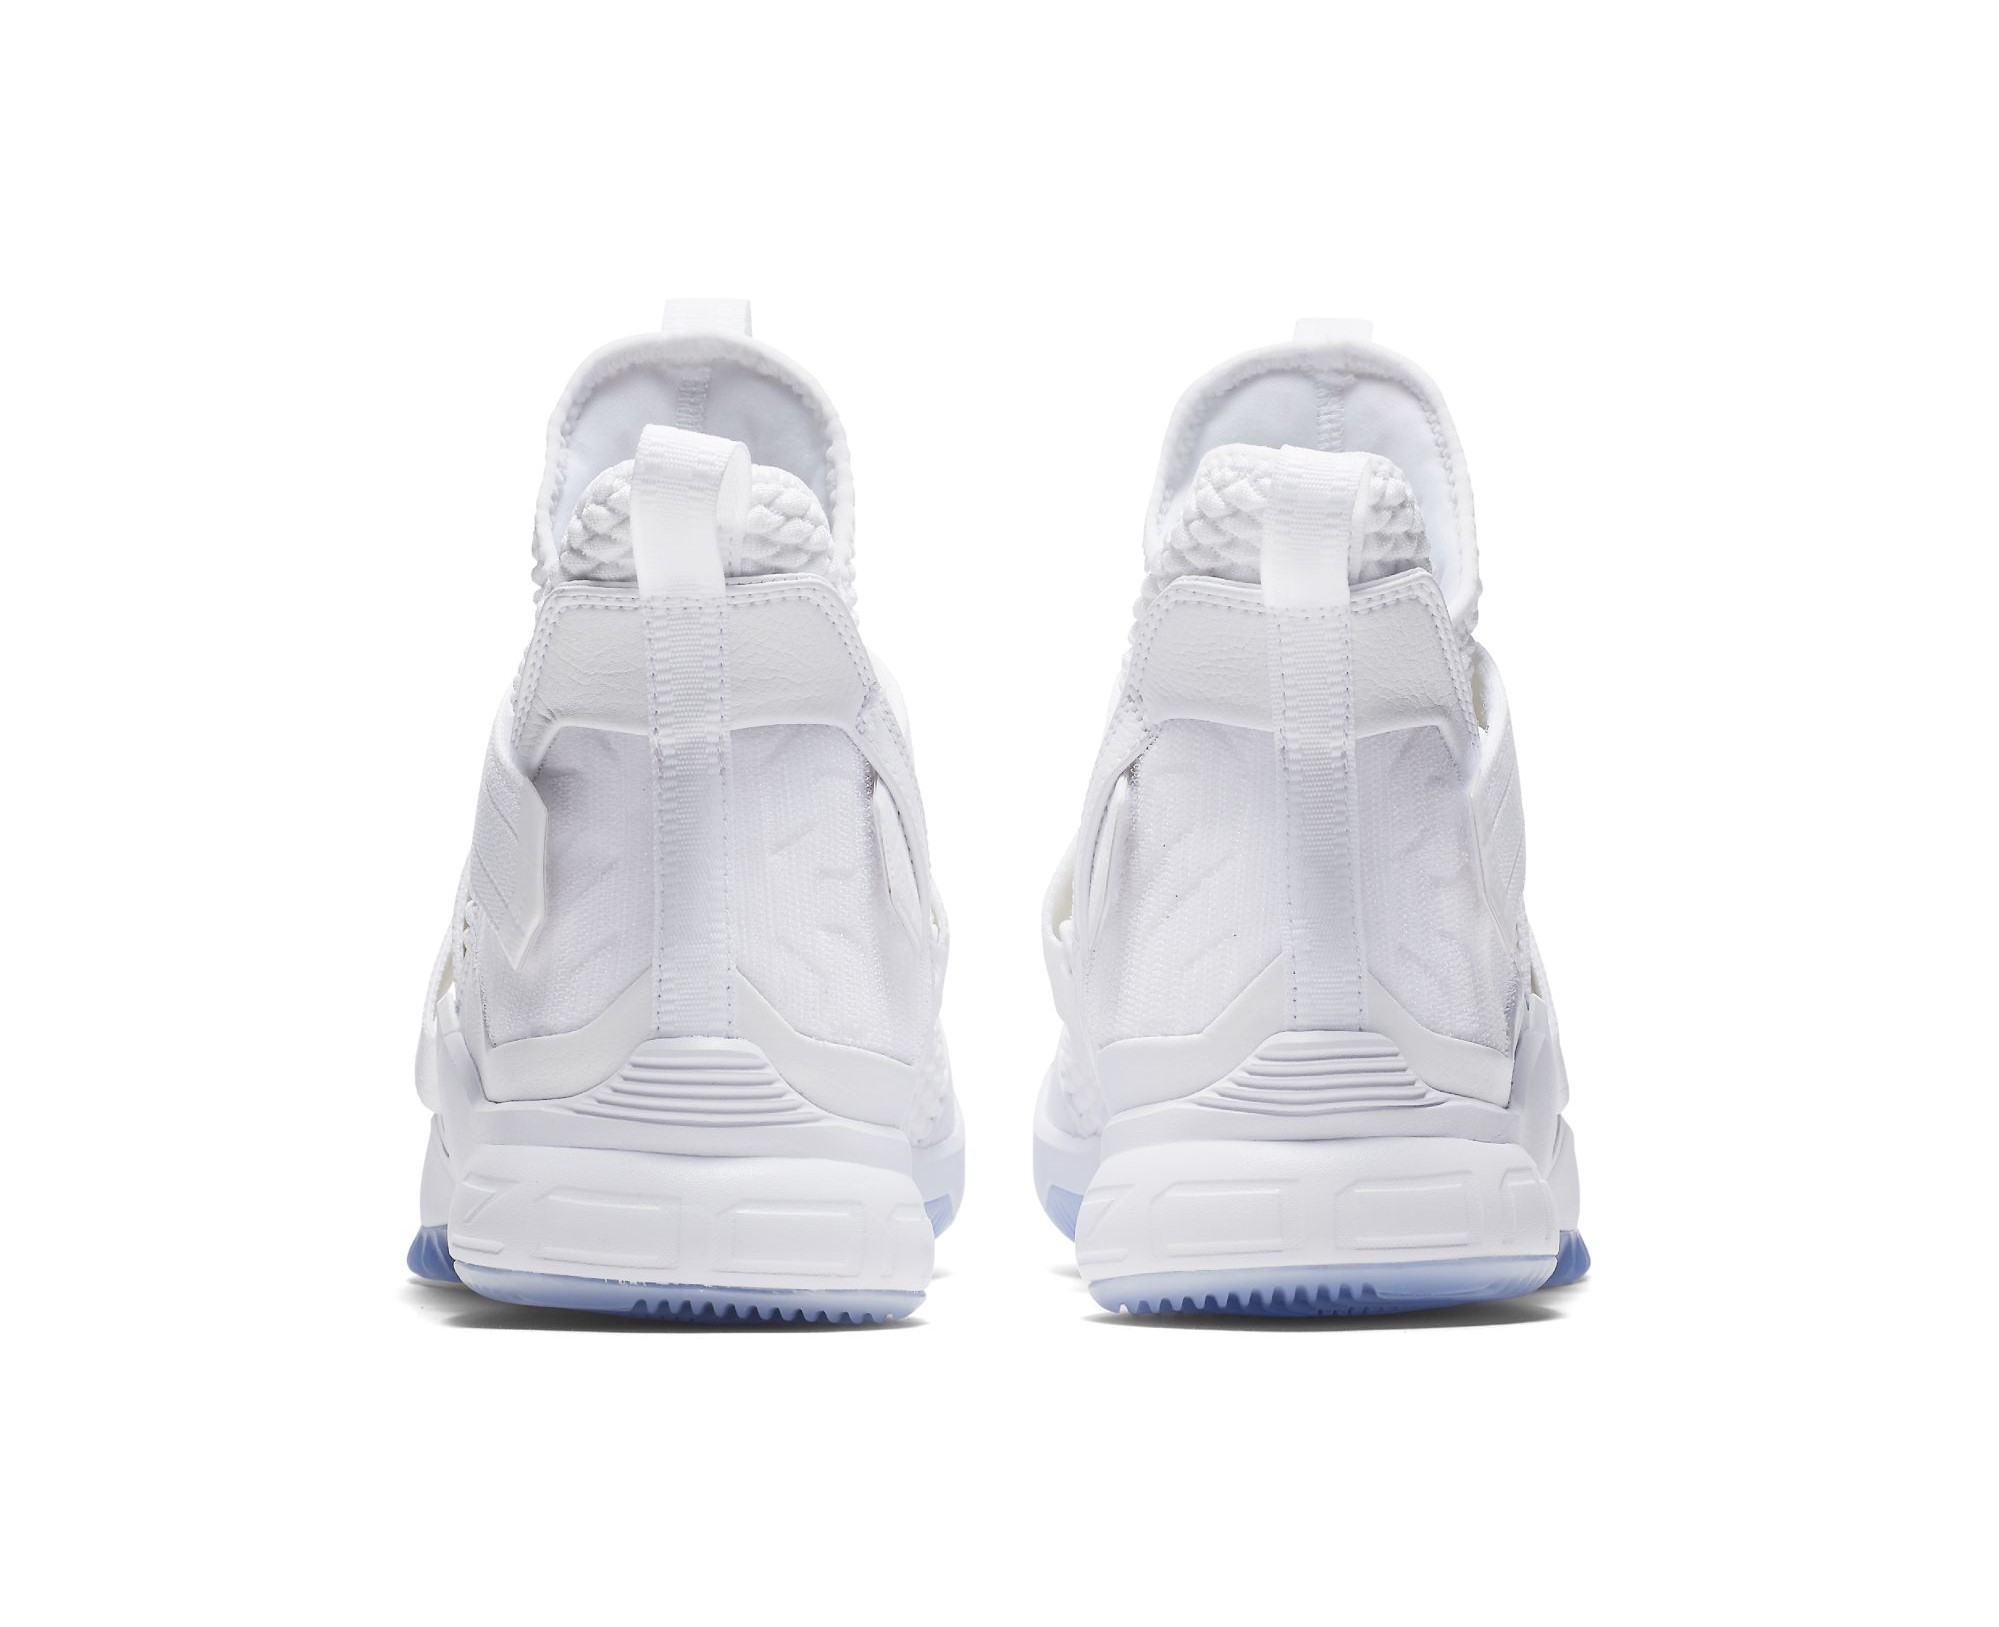 newest 6c05e 98e34 The Nike LeBron Soldier 12 'Triple White' Releases Next ...